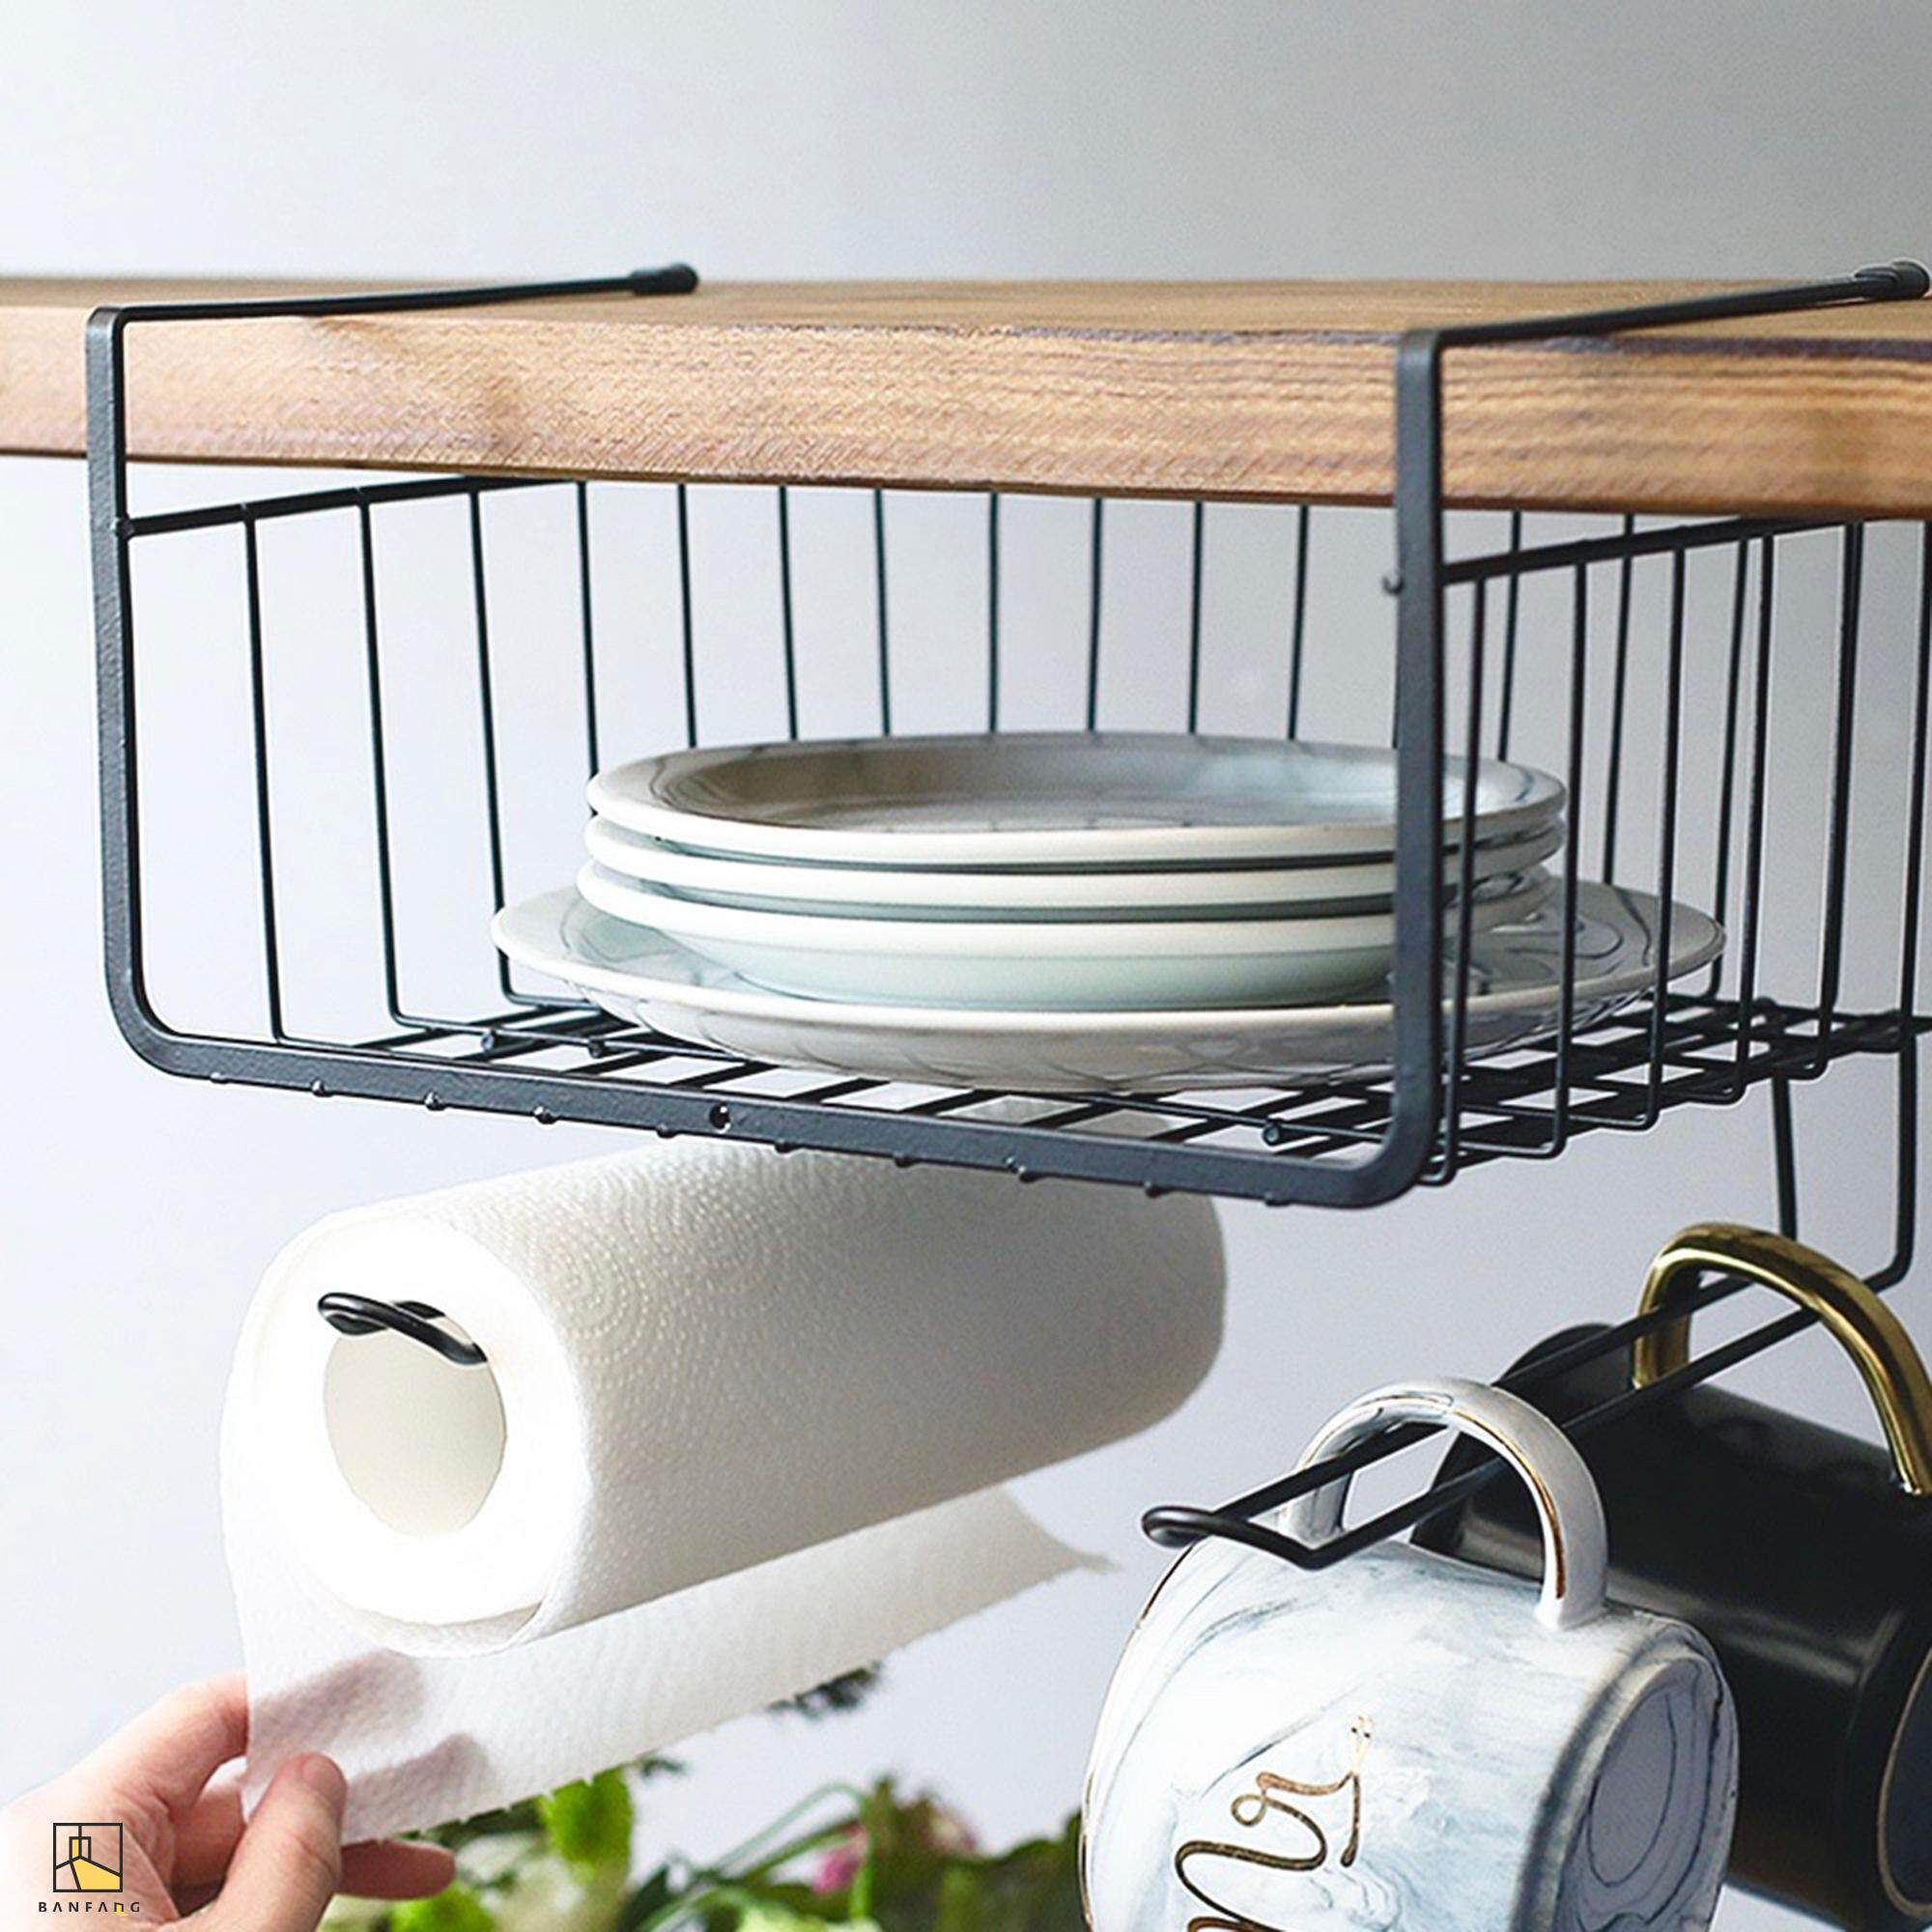 BANFANG Under the kitchen cabinet hanging basket rack free shipping dish rack kitchen cabinet storage rack lunch box rack kitchen rak pinggan dish drainer shelf rack kitchen storage cake stand stainless steel kitchen rack food container cake mould dish dr